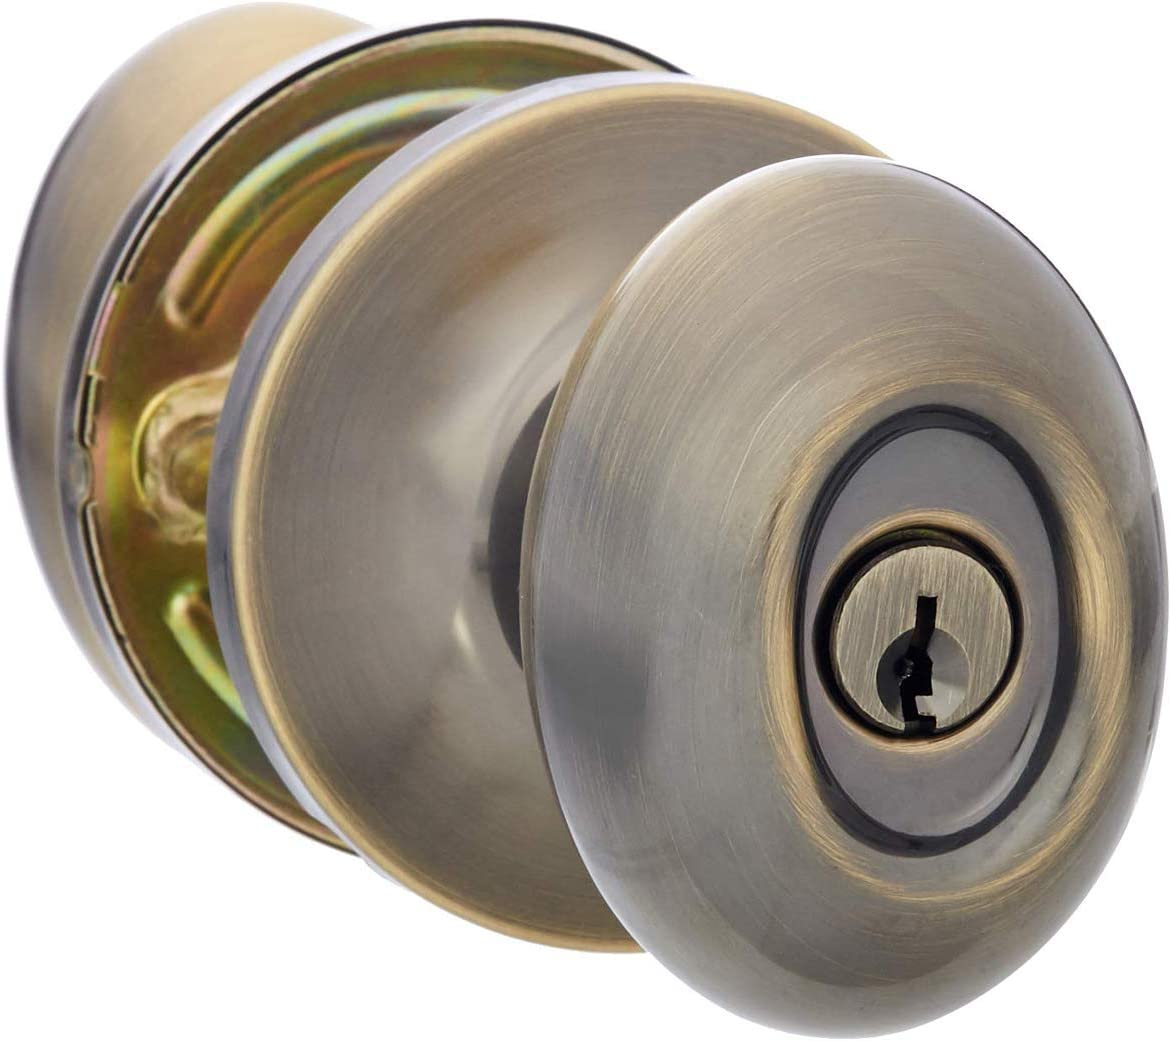 AmazonBasics Exterior Door Knob With Lock, Oval Egg, Antique Brass